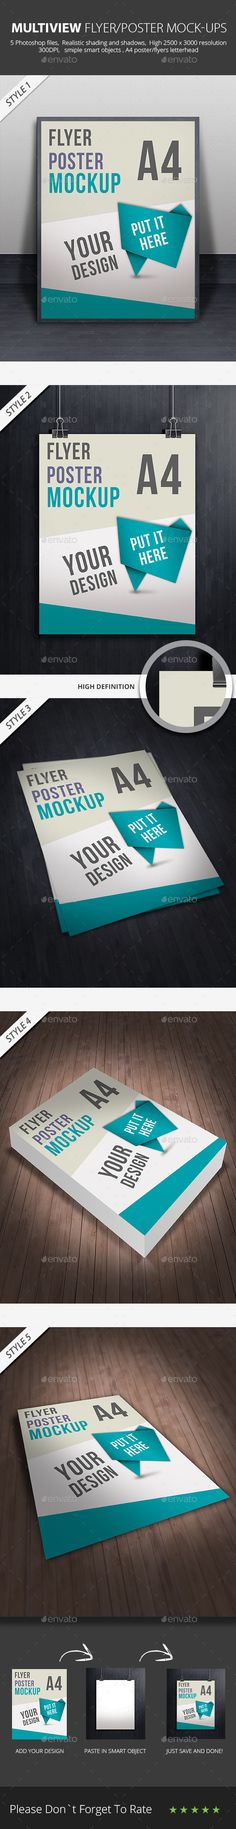 A4 Flyer/ Poster/ Paper Mockup for grand presentation of your flyers with multiple layouts and view point, it's ideal for product showcasing on Creative Market or Graphic River. http://graphicriver.net/item/a4-flyer-poster-paper-mockup-/9000718?ref=themedevisers